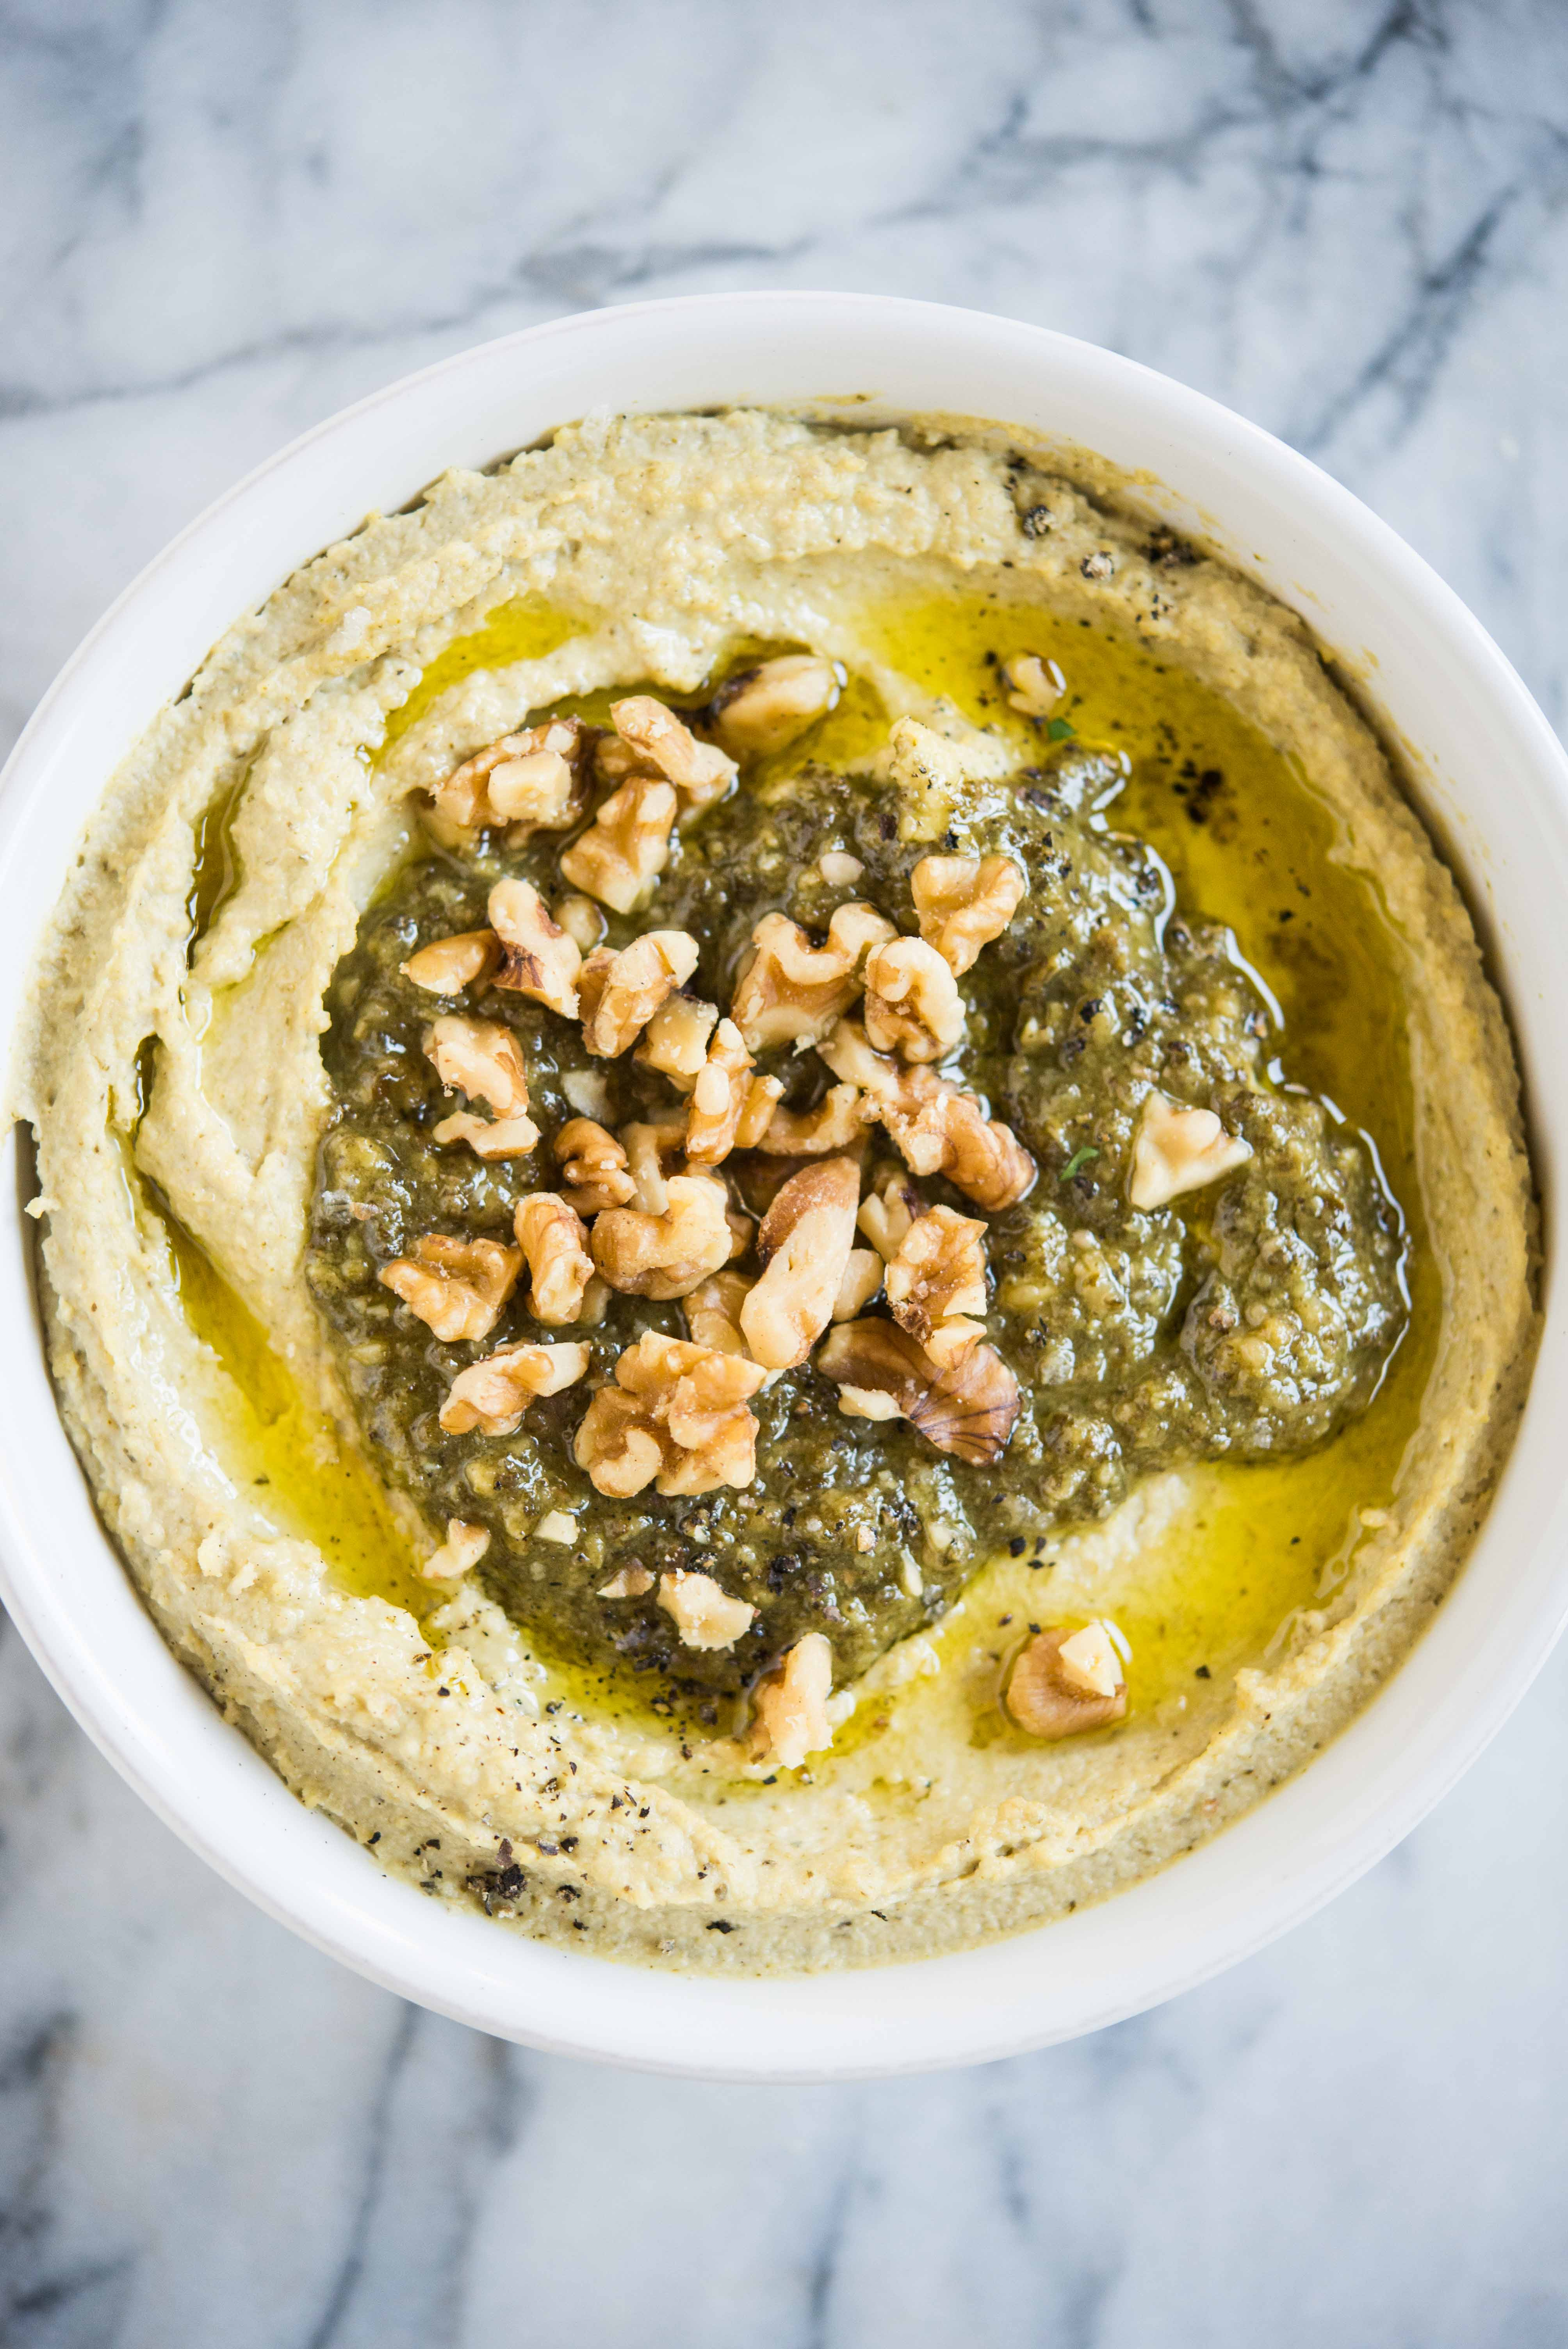 creamy hummus with pesto and walnuts on top in a white bowl on a marble surface